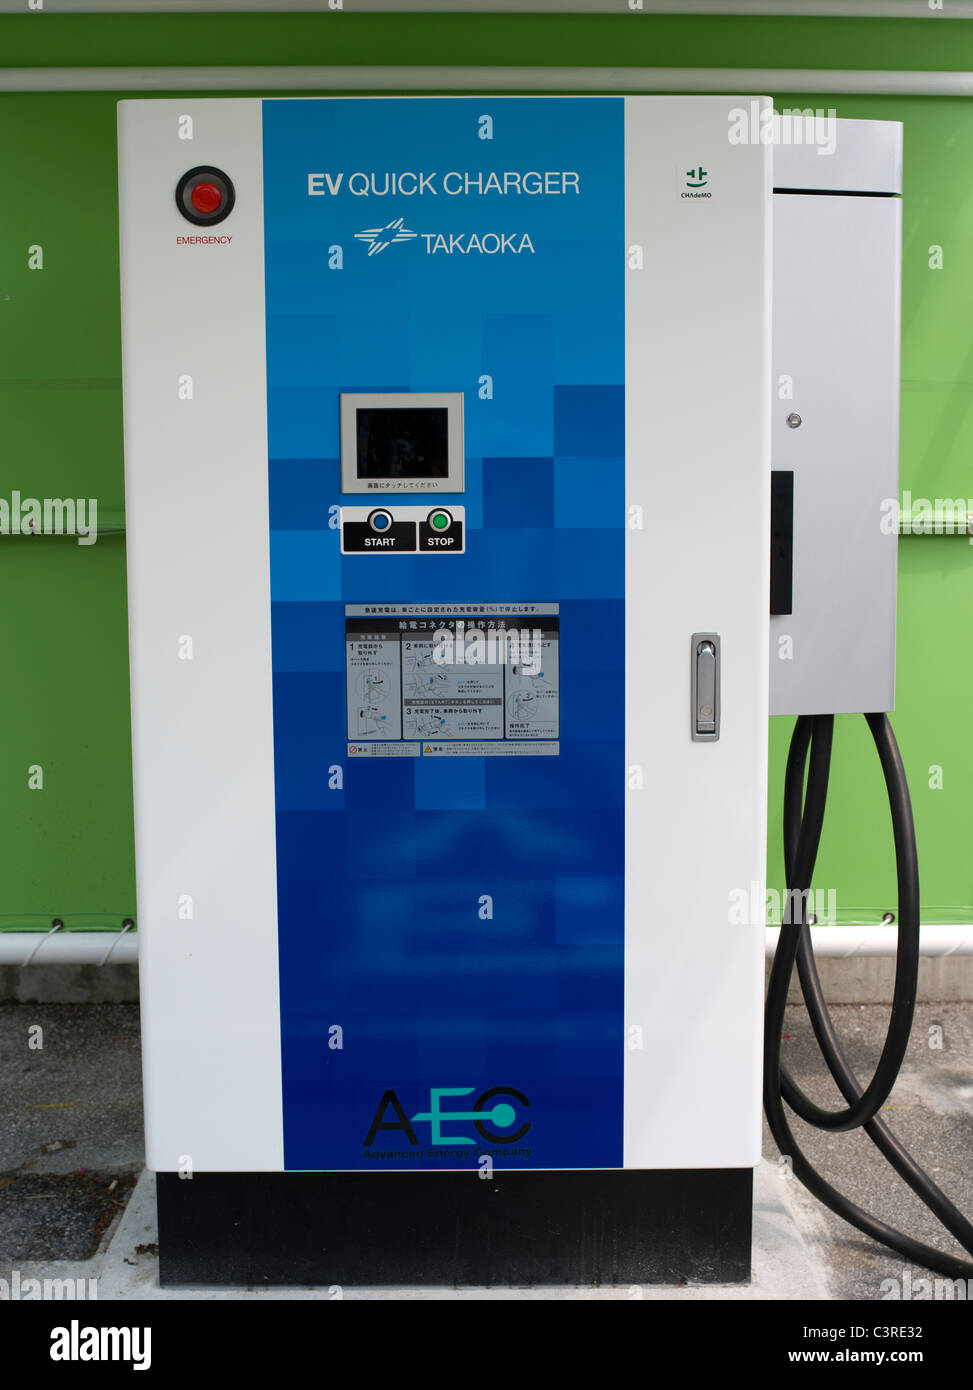 Electric Vehicle charging station in Okinawa, Japan - Stock Image